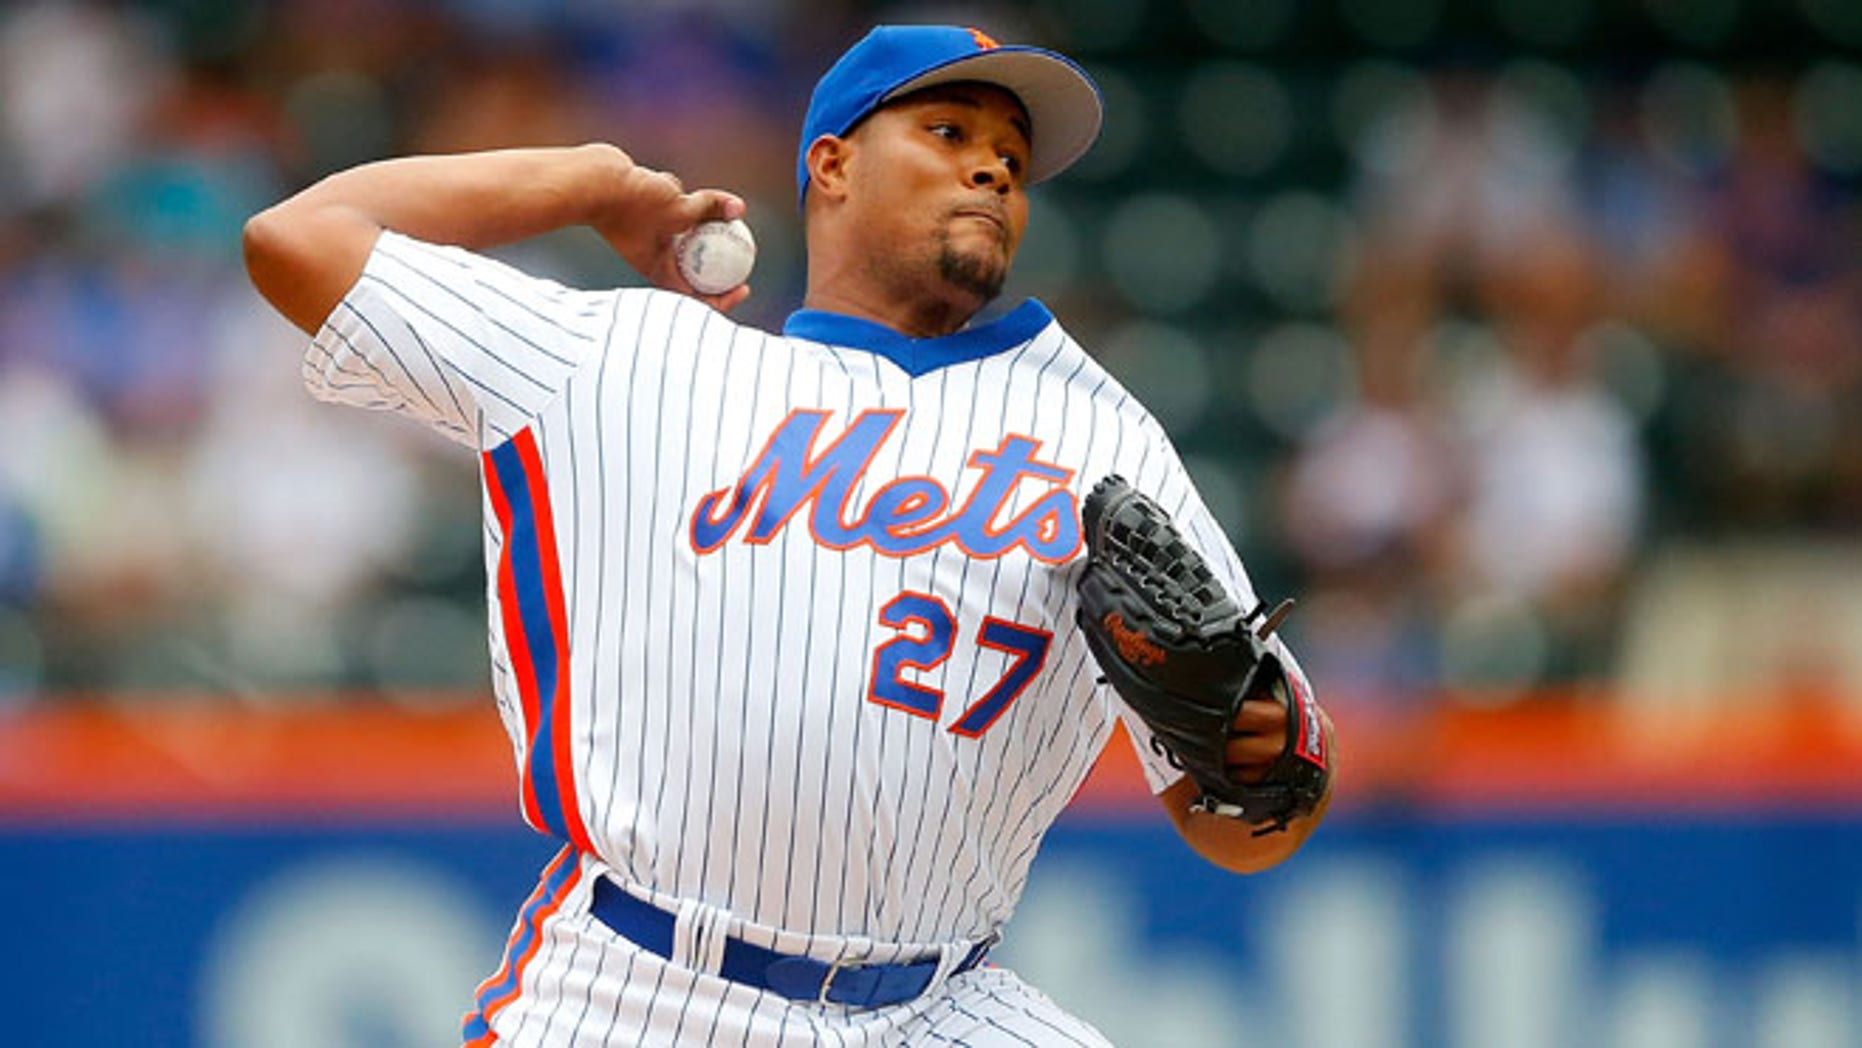 Jeurys Familia #27 of the New York Mets on July 31, 2016.